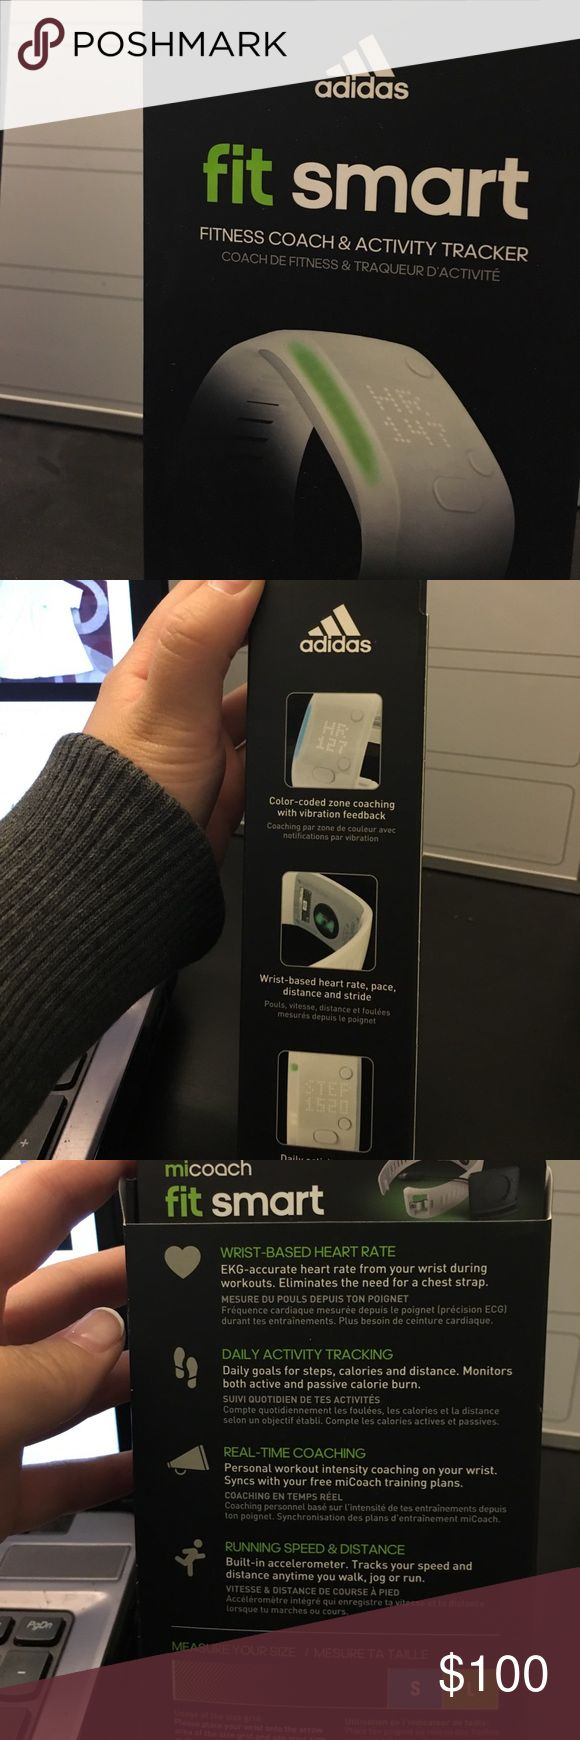 Adidas Fit Smart - Fitness and Activity Monitor Provides visual coached guidance for workout intensity to keep you on track, motivated and training smart and effectively. This sport fitness watch syncs wirelessly with miCoach train & run app. adidas Other